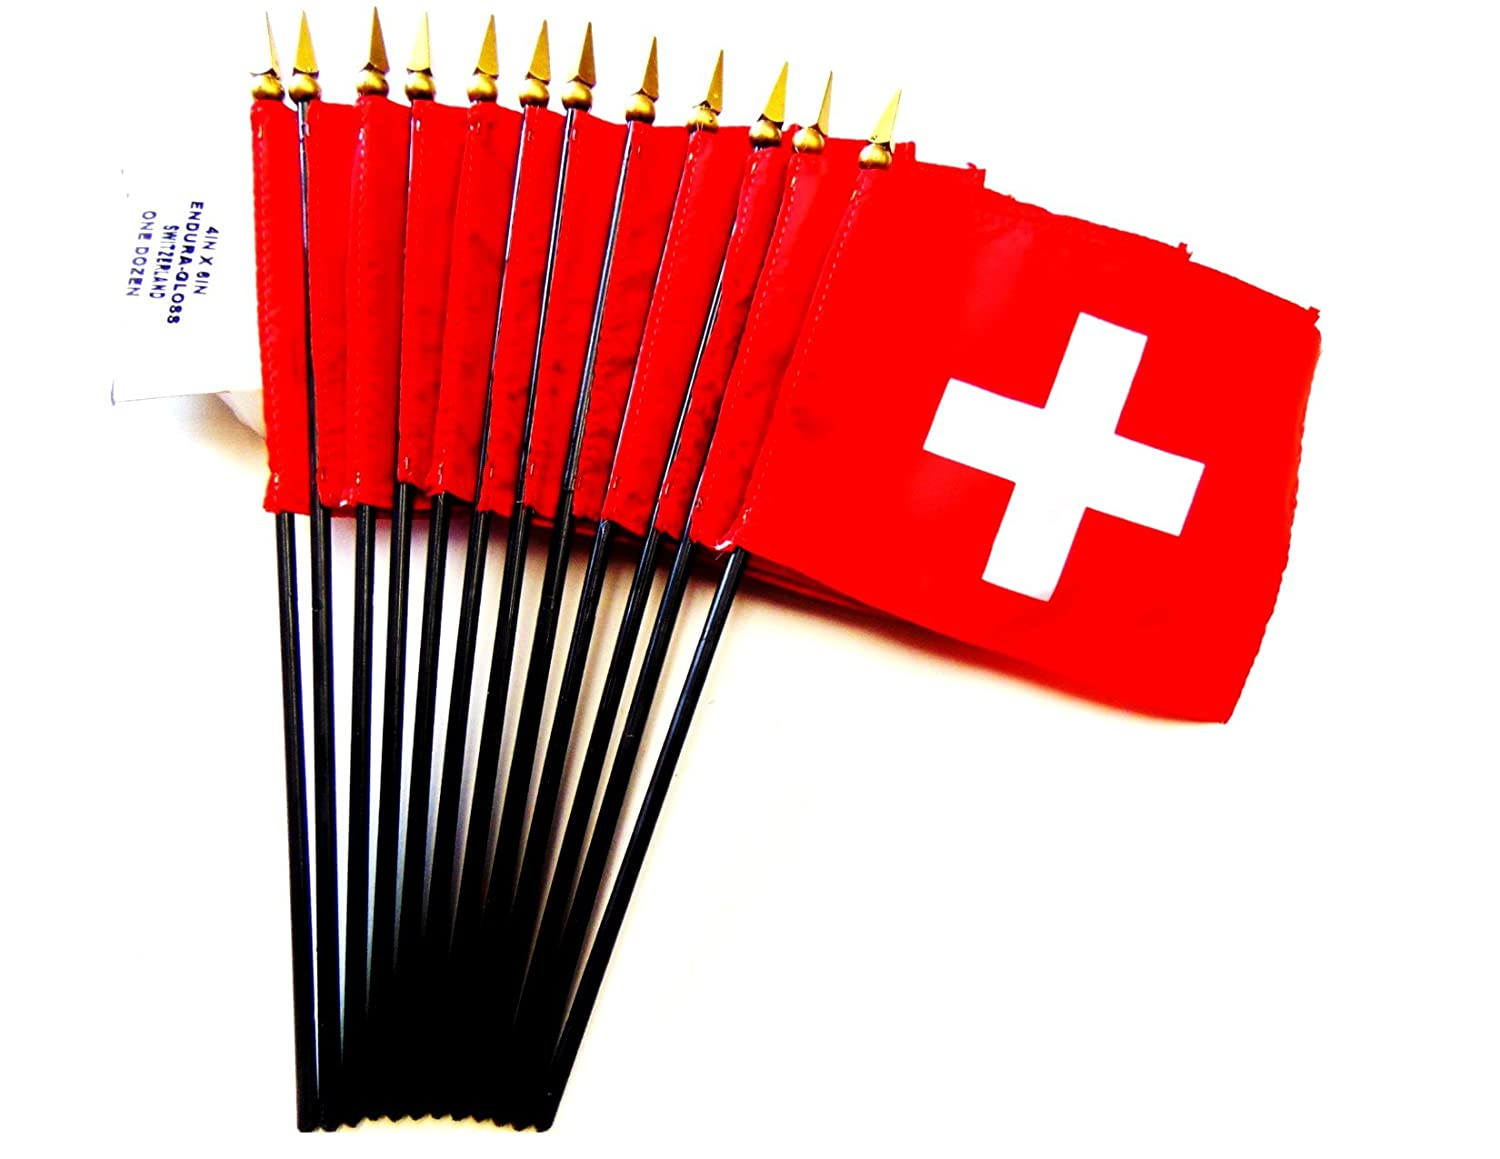 MADE IN USA! Box of 12 Switzerland 4x6 Miniature Desk /& Table Flags; 12 American Made Small Mini Swiss Flags in a Custom Made Cardboard Box Specifically Made for These Flags